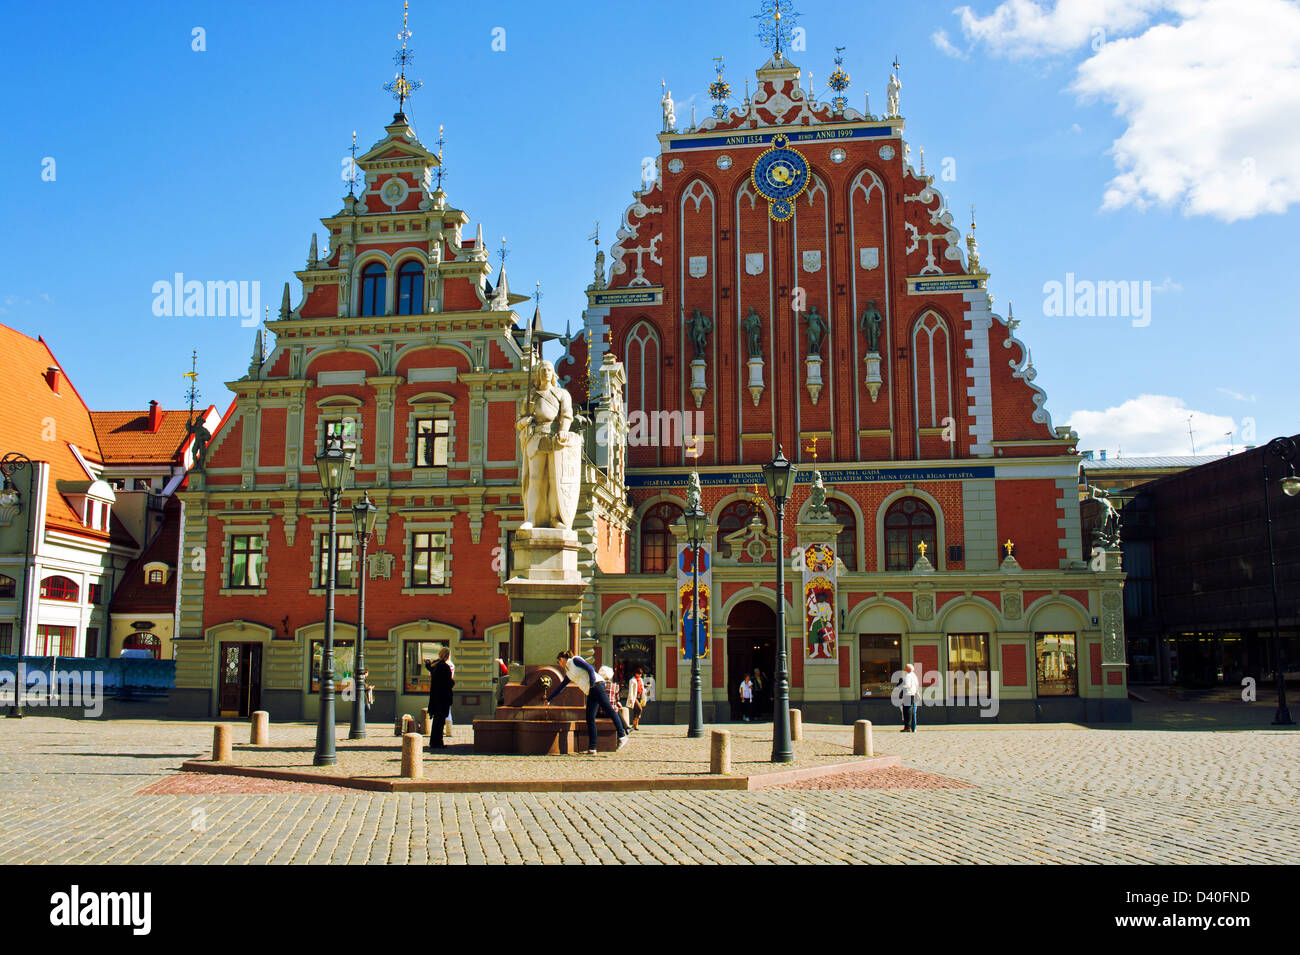 Old house of the blackheads in Riga. Latvia - Stock Image